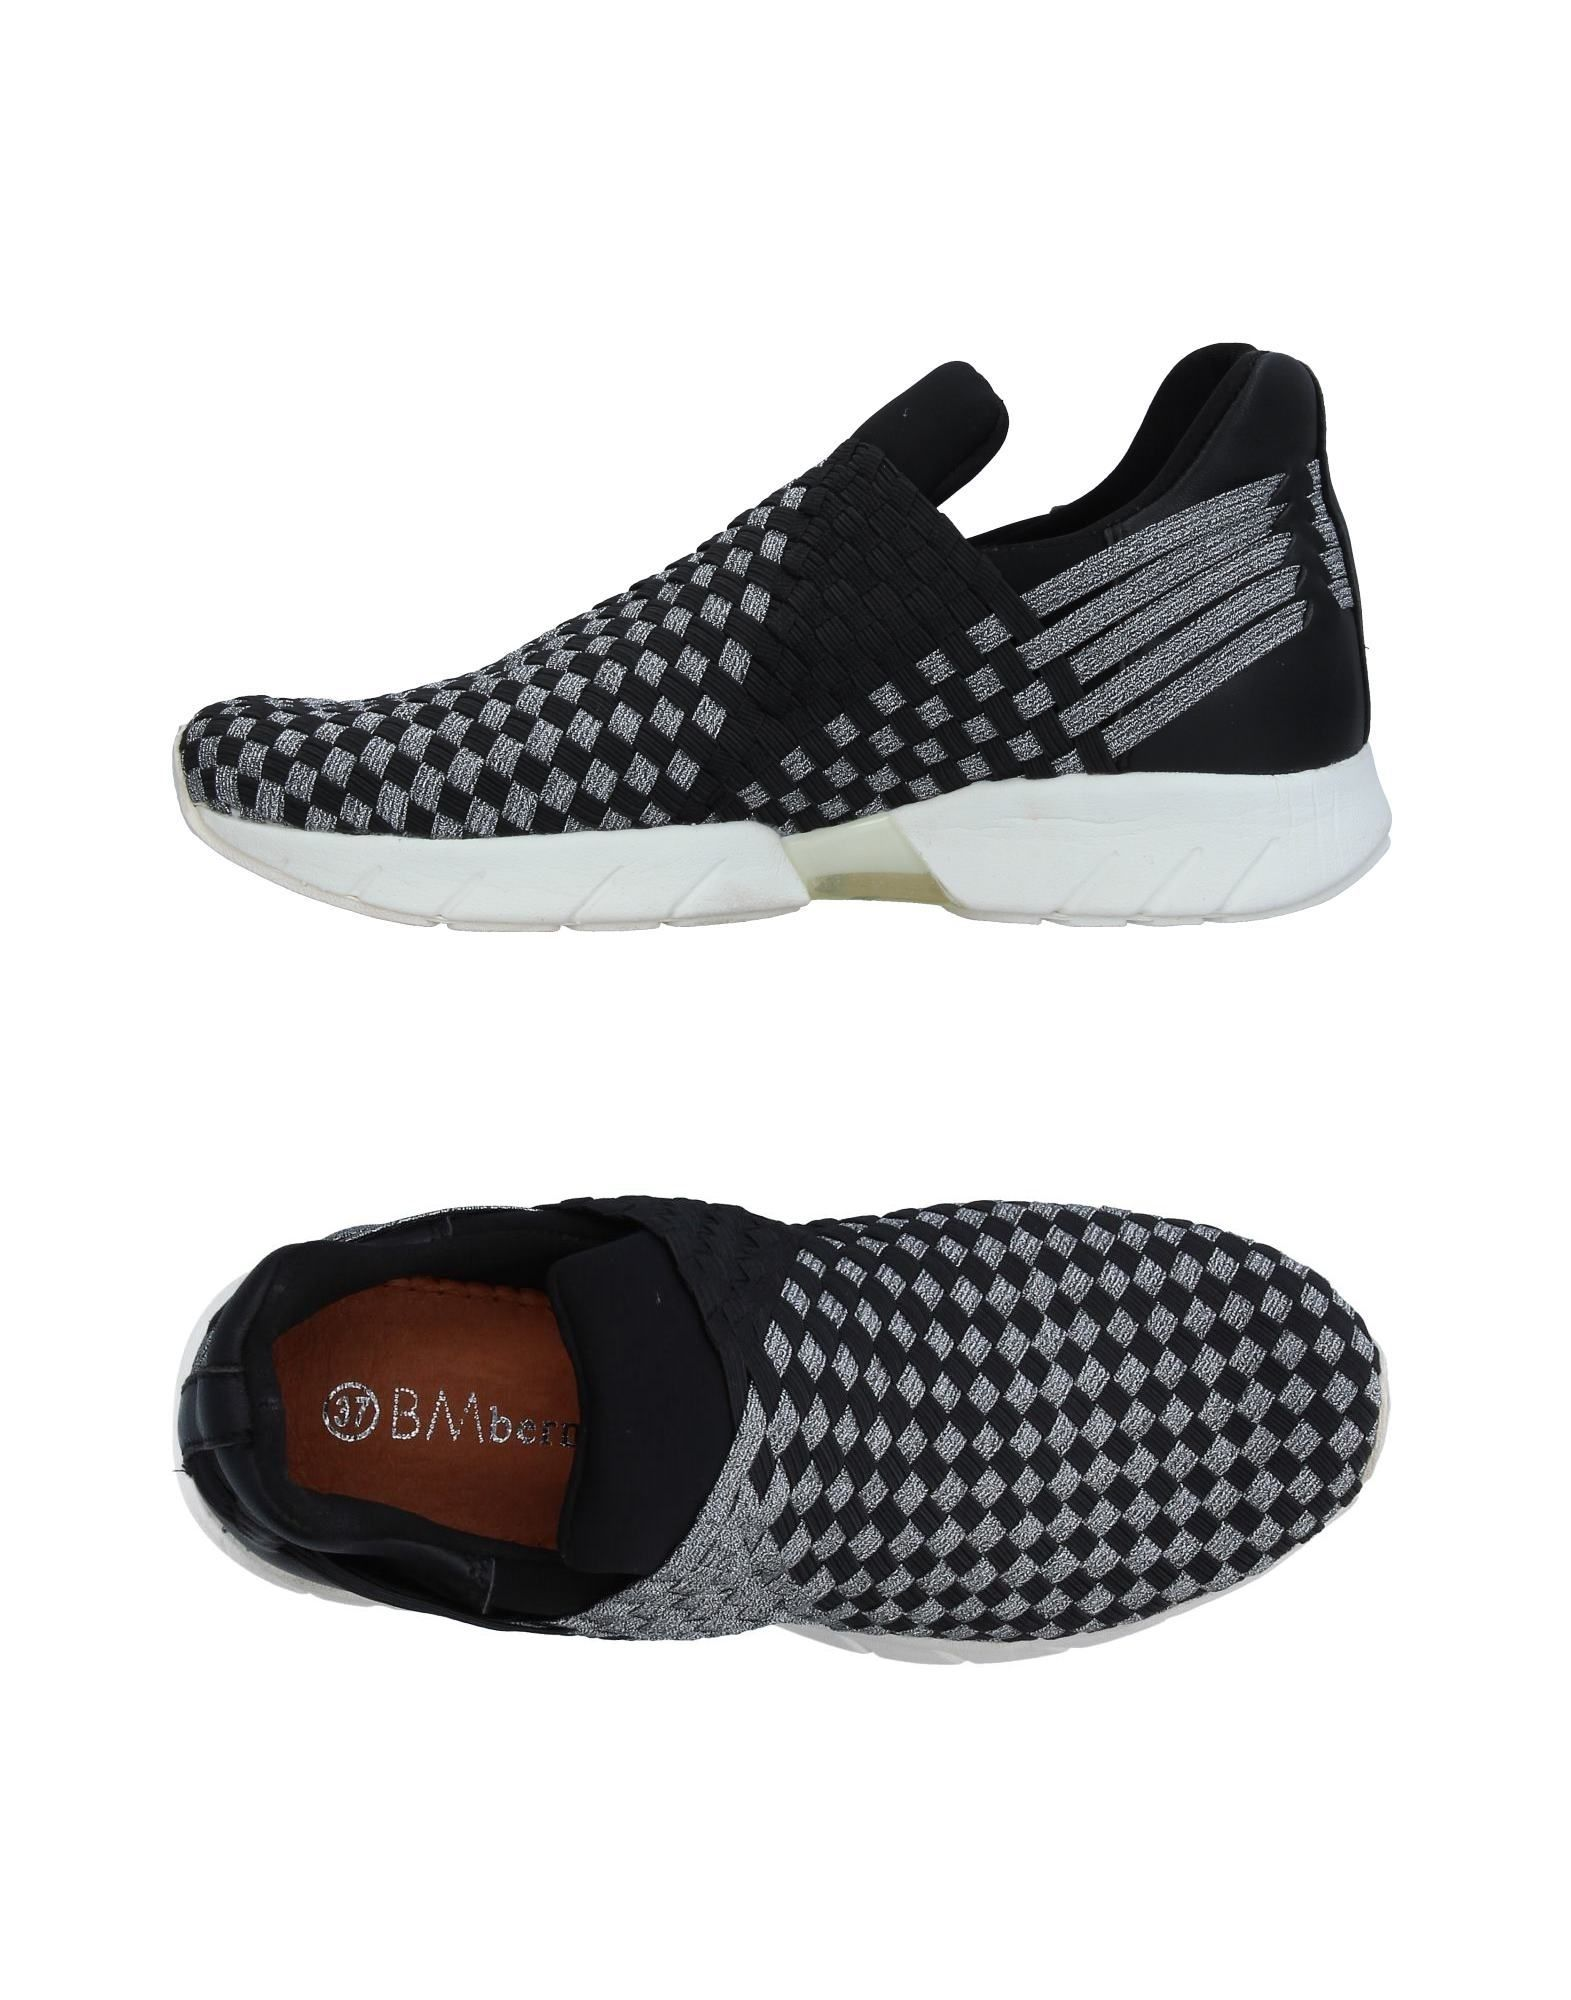 BERNIE MEV. Sneakers. techno fabric, laminated effect, no appliqués, two-tone, round toeline, flat, leather lining, rubber cleated sole, contains non-textile parts of animal origin. Textile fibers, Soft Leather